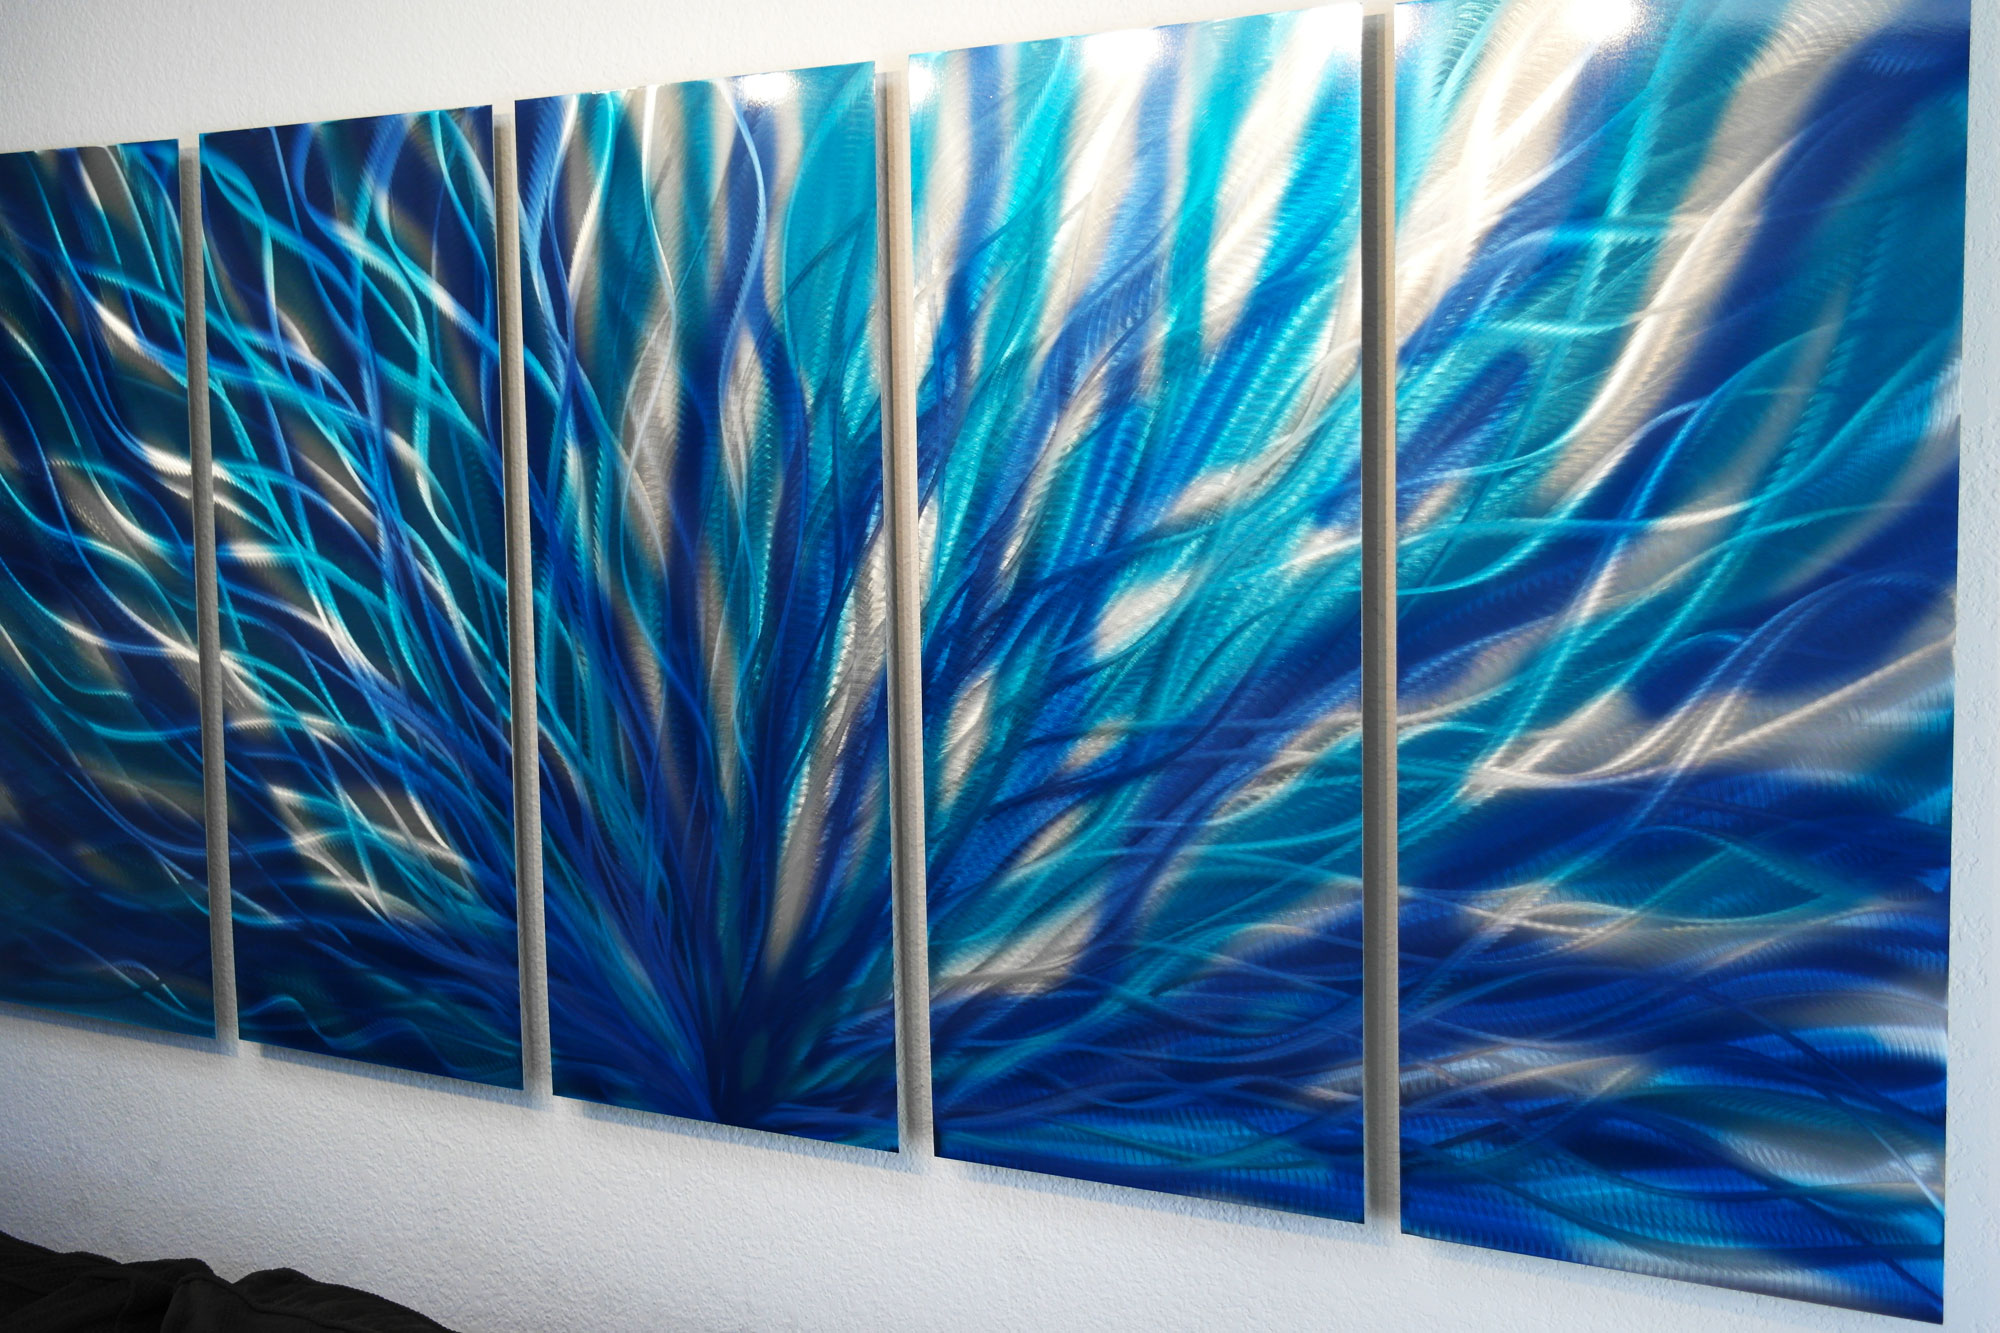 Blue Abstract Wall Decor : Radiance blue metal wall art abstract sculpture